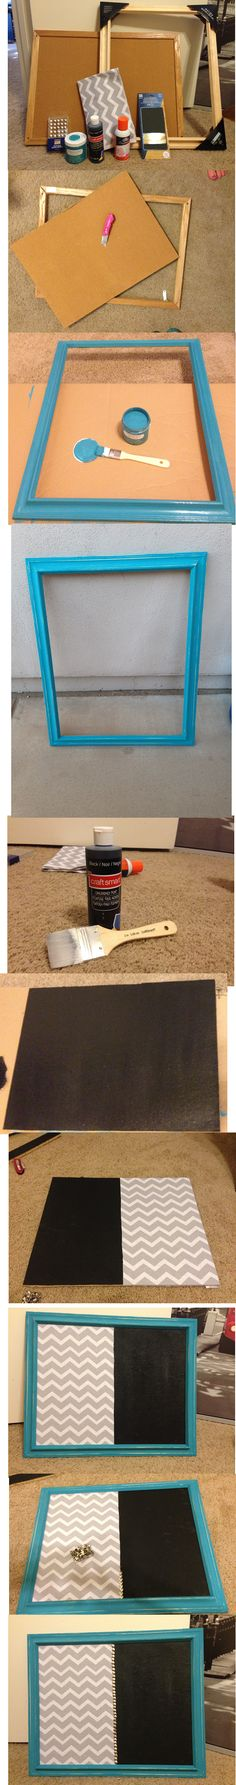 DIY Chalk/Cork Board Time: 2 hours (including drying time)  Cost: ~$30 1-Paint Picture frame.  2-While frame is drying, paint cork board with chalkboard paint.  3-While chalk board paint is drying, you can use sand paper to distress the frame (if desired).  4-Cut Fabric to desired size.  5-Spray adhesive to fabric then immediately put onto board in desired spot.  6-Place in picture frame and adhere it so it doesn't fall out (I used hot glue).  7-To cover the fabric line, I placed silver…